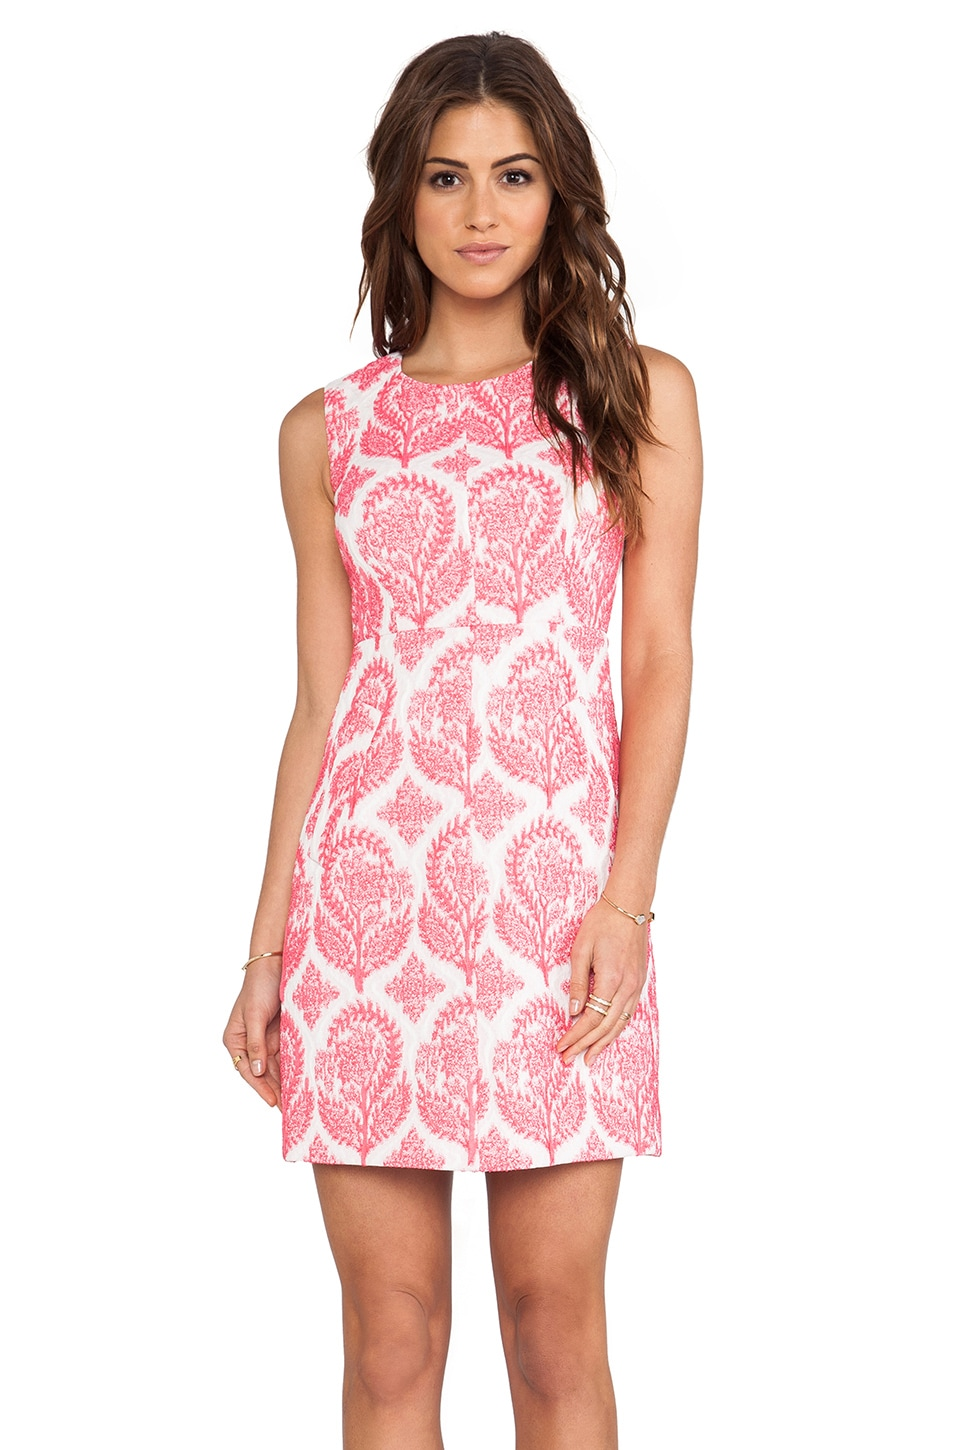 Diane von Furstenberg Carpreena Floral Stamp Dress in Tulip & White